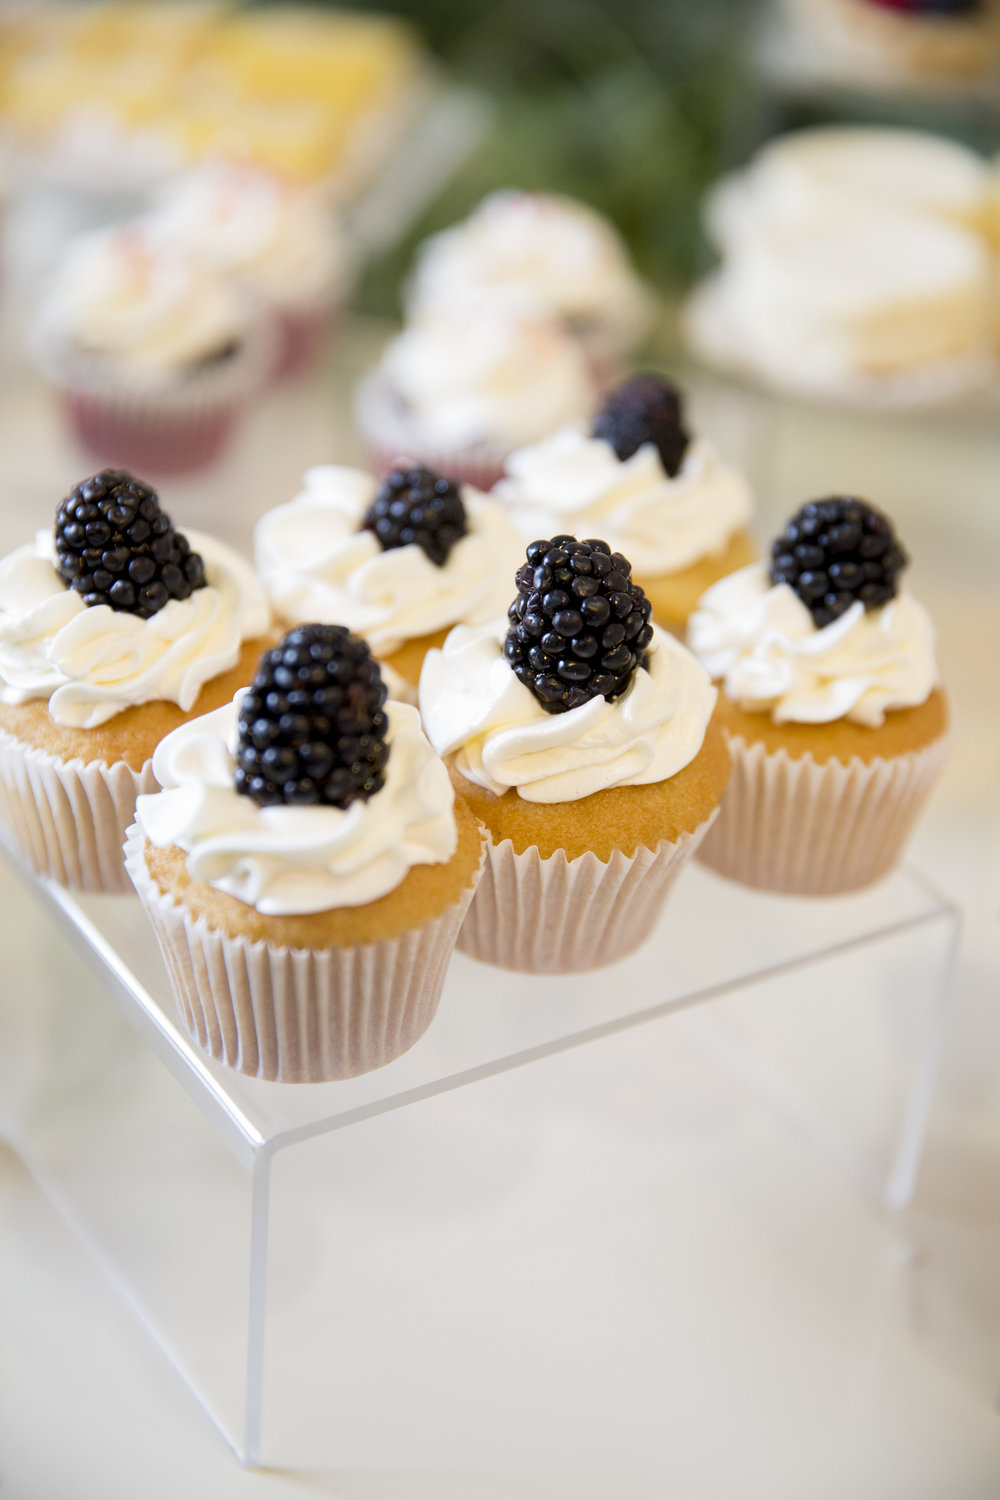 www.santabarbaraweddingstyle | dessert buffet | Dessert ideas | mini cupcakes | lele patisserie | Kristen Beinke Photography